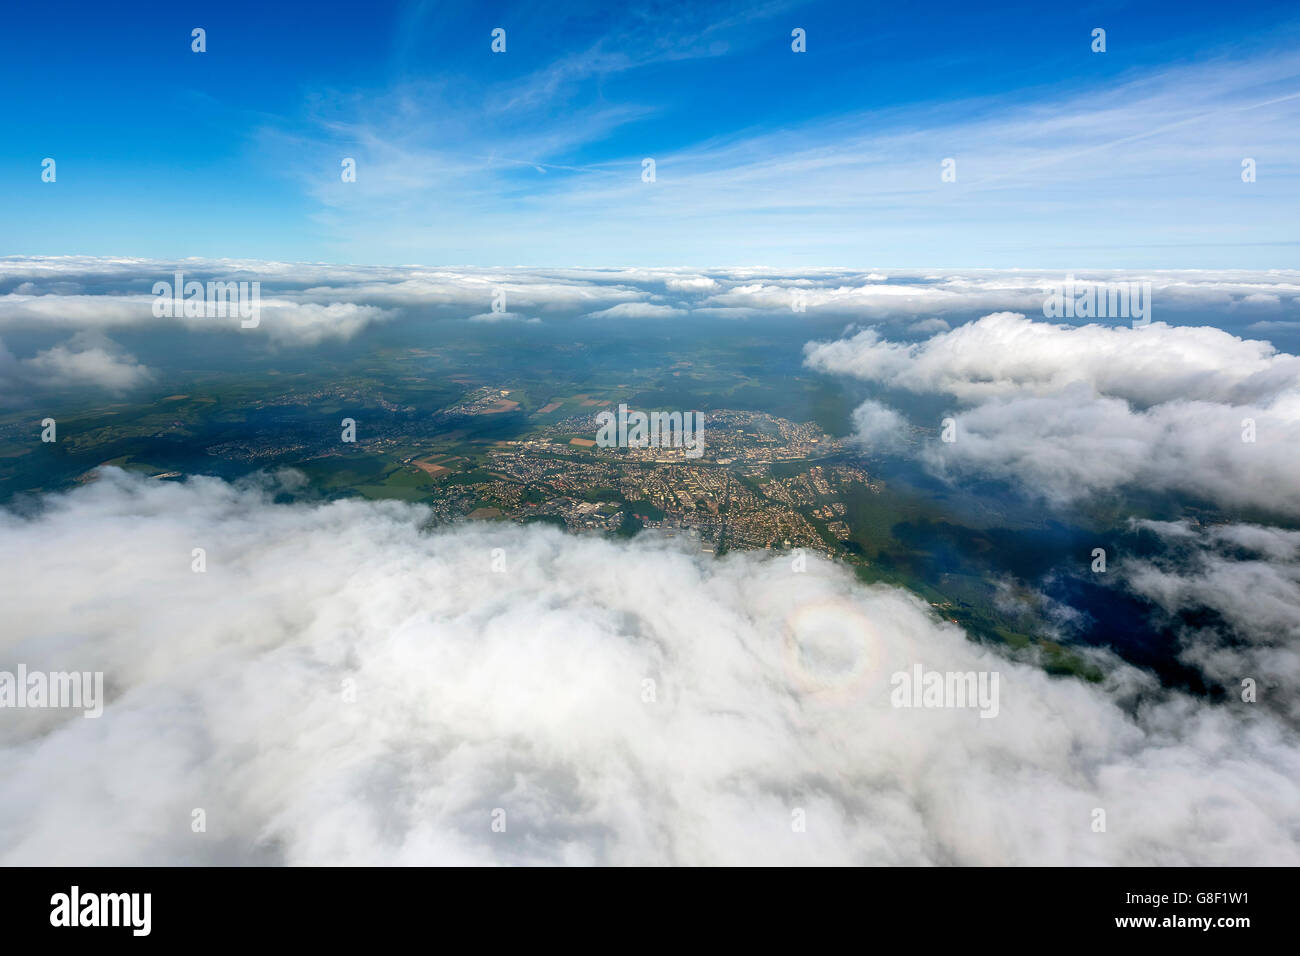 Aerial view, fisheye optics, fisheye lens, overview of Menden, view through the cloud cover from 5000 feet altitude, Stock Photo